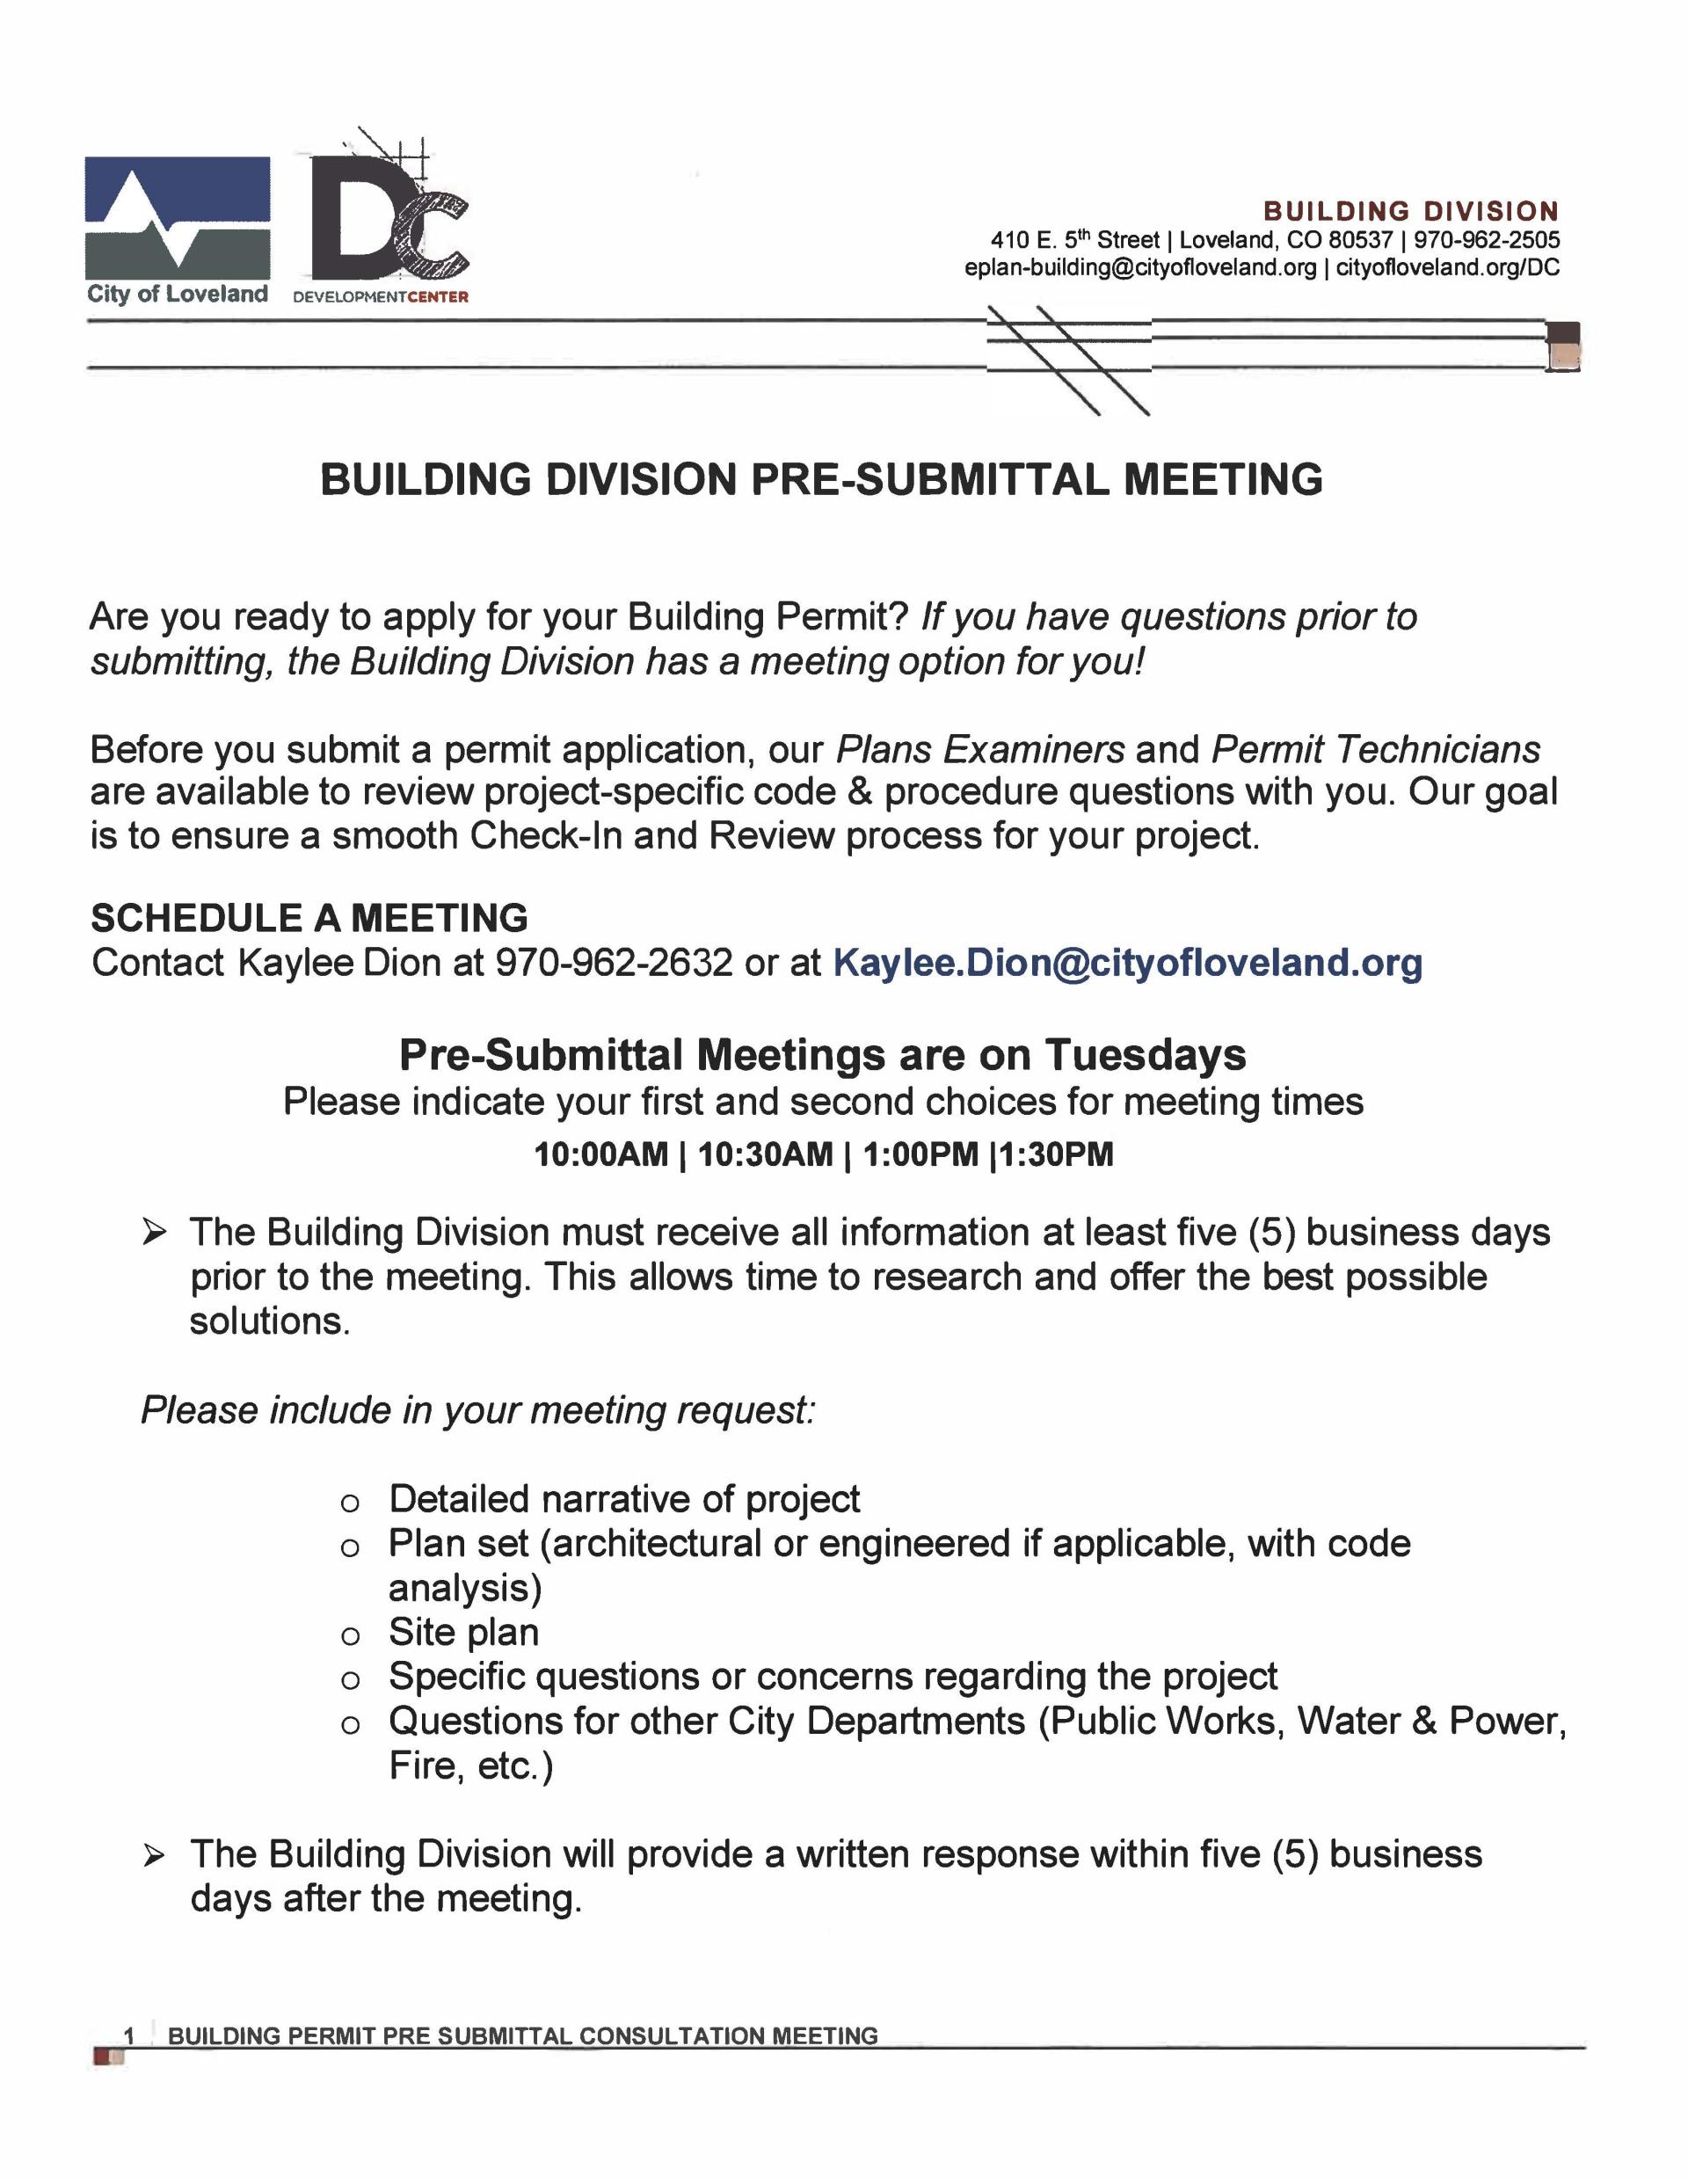 Pre-Submittal Meeting | City of Loveland